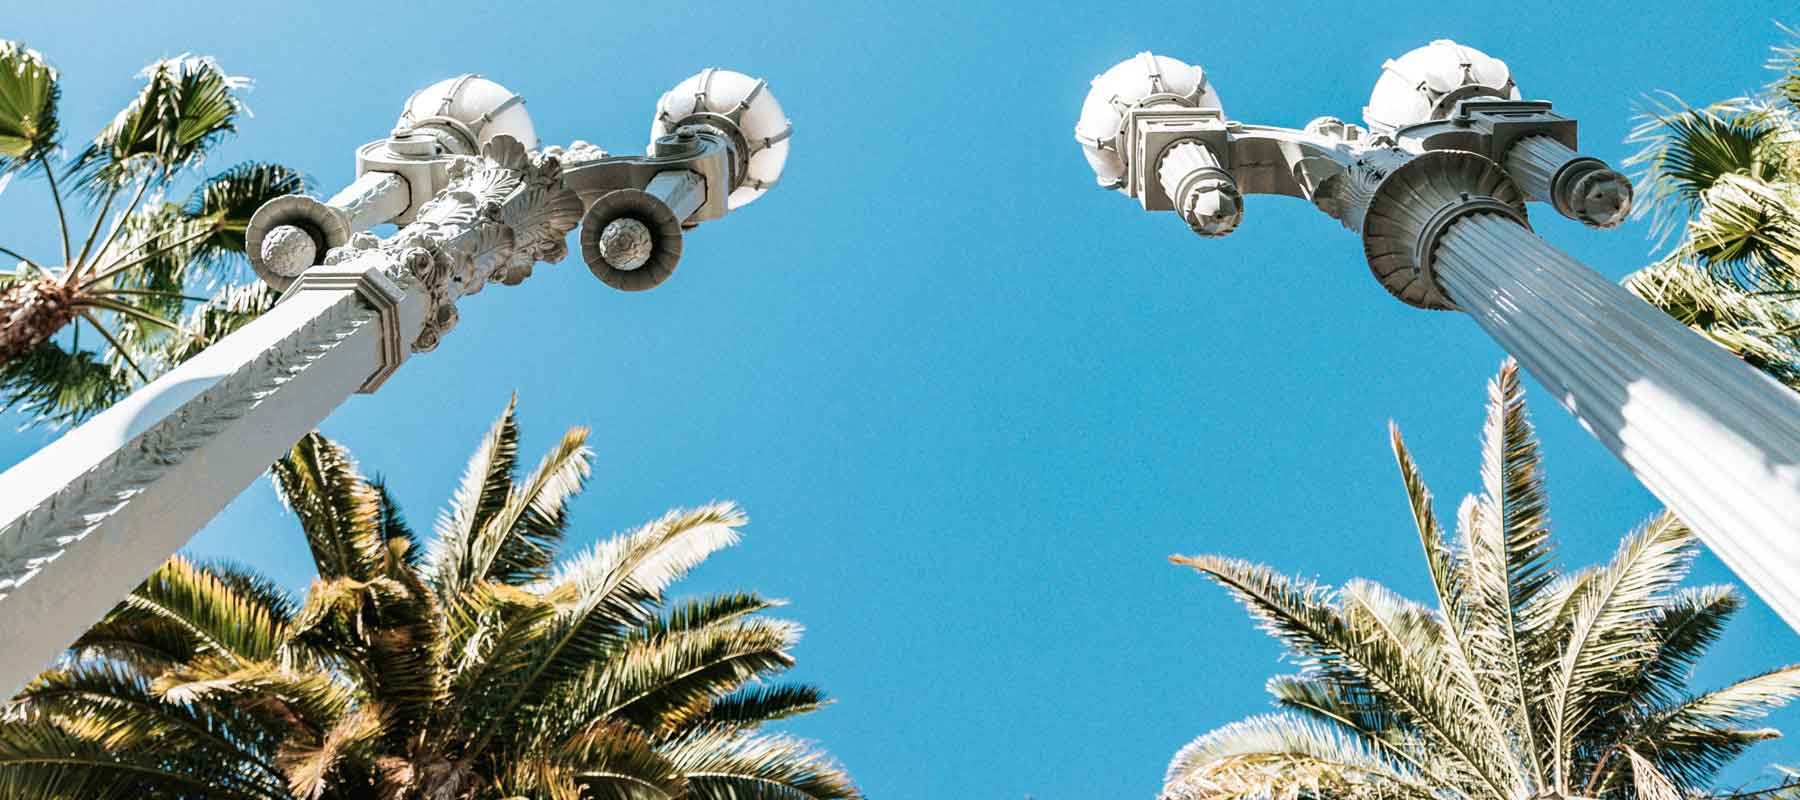 a worms eye view looking up at street lights and palm trees